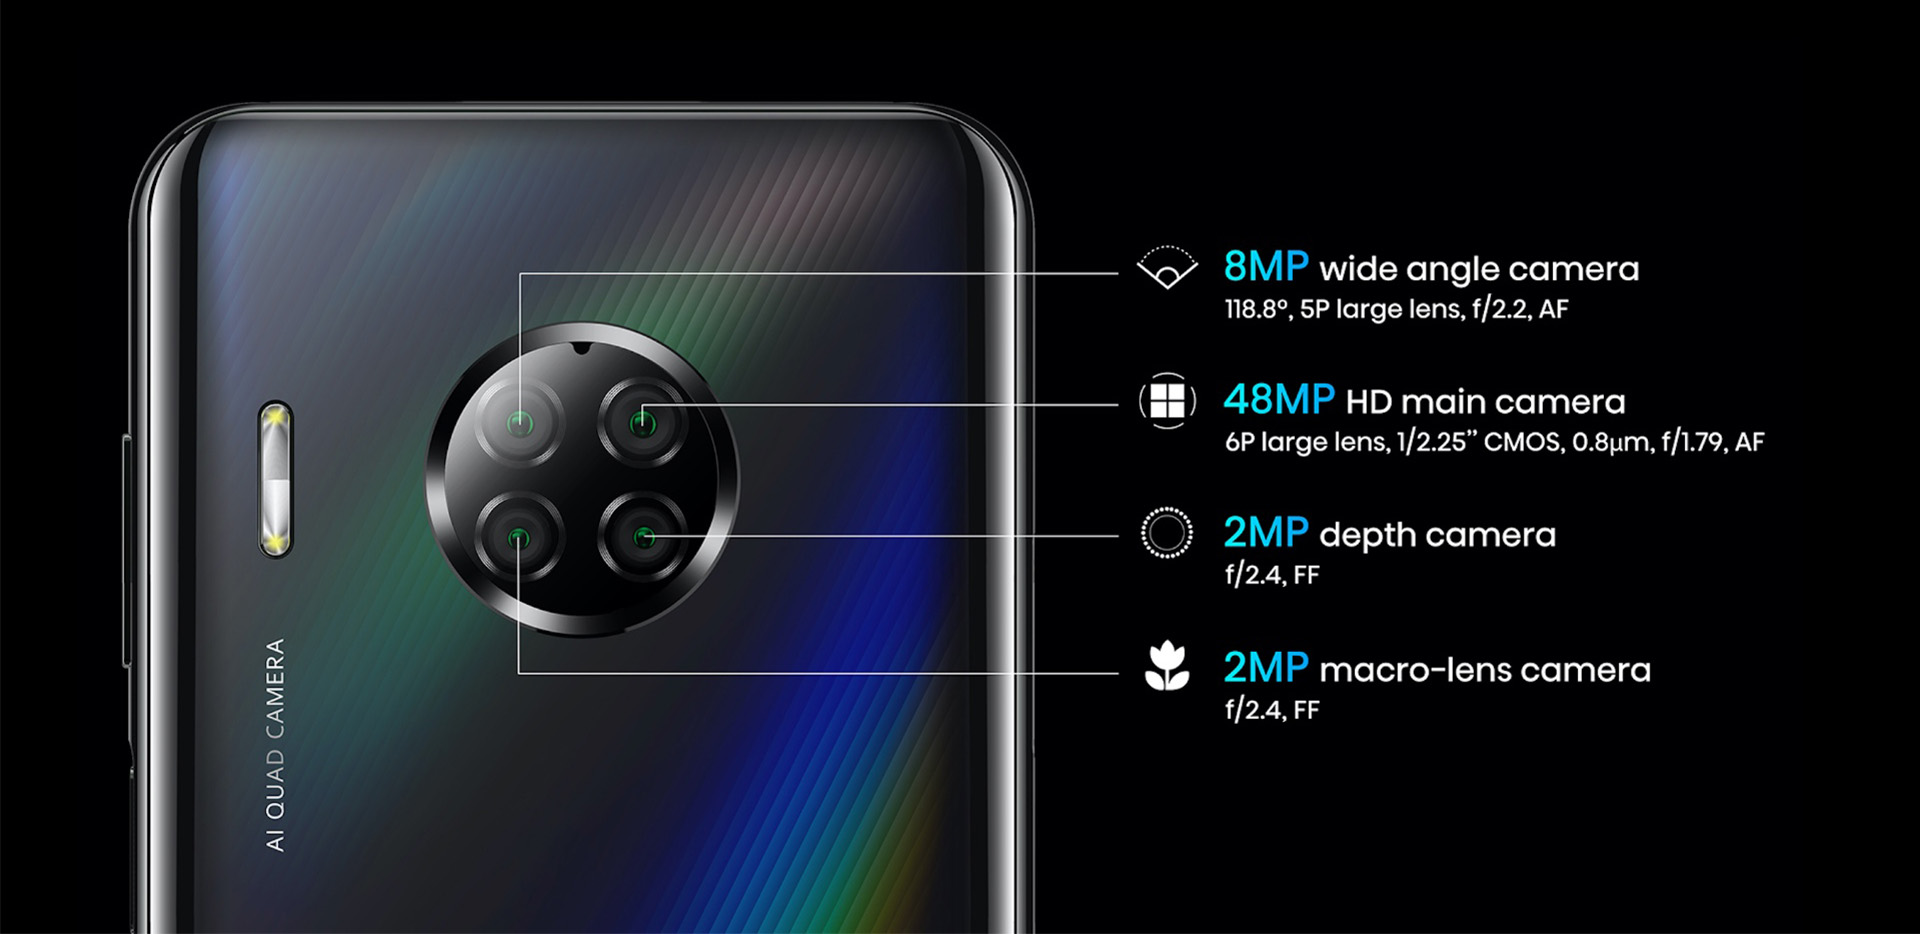 HISENSE INFINITY H50 ZOOM - STRONG COMBINATION EACH PERFORMS ITS OWN FUNCTIONS